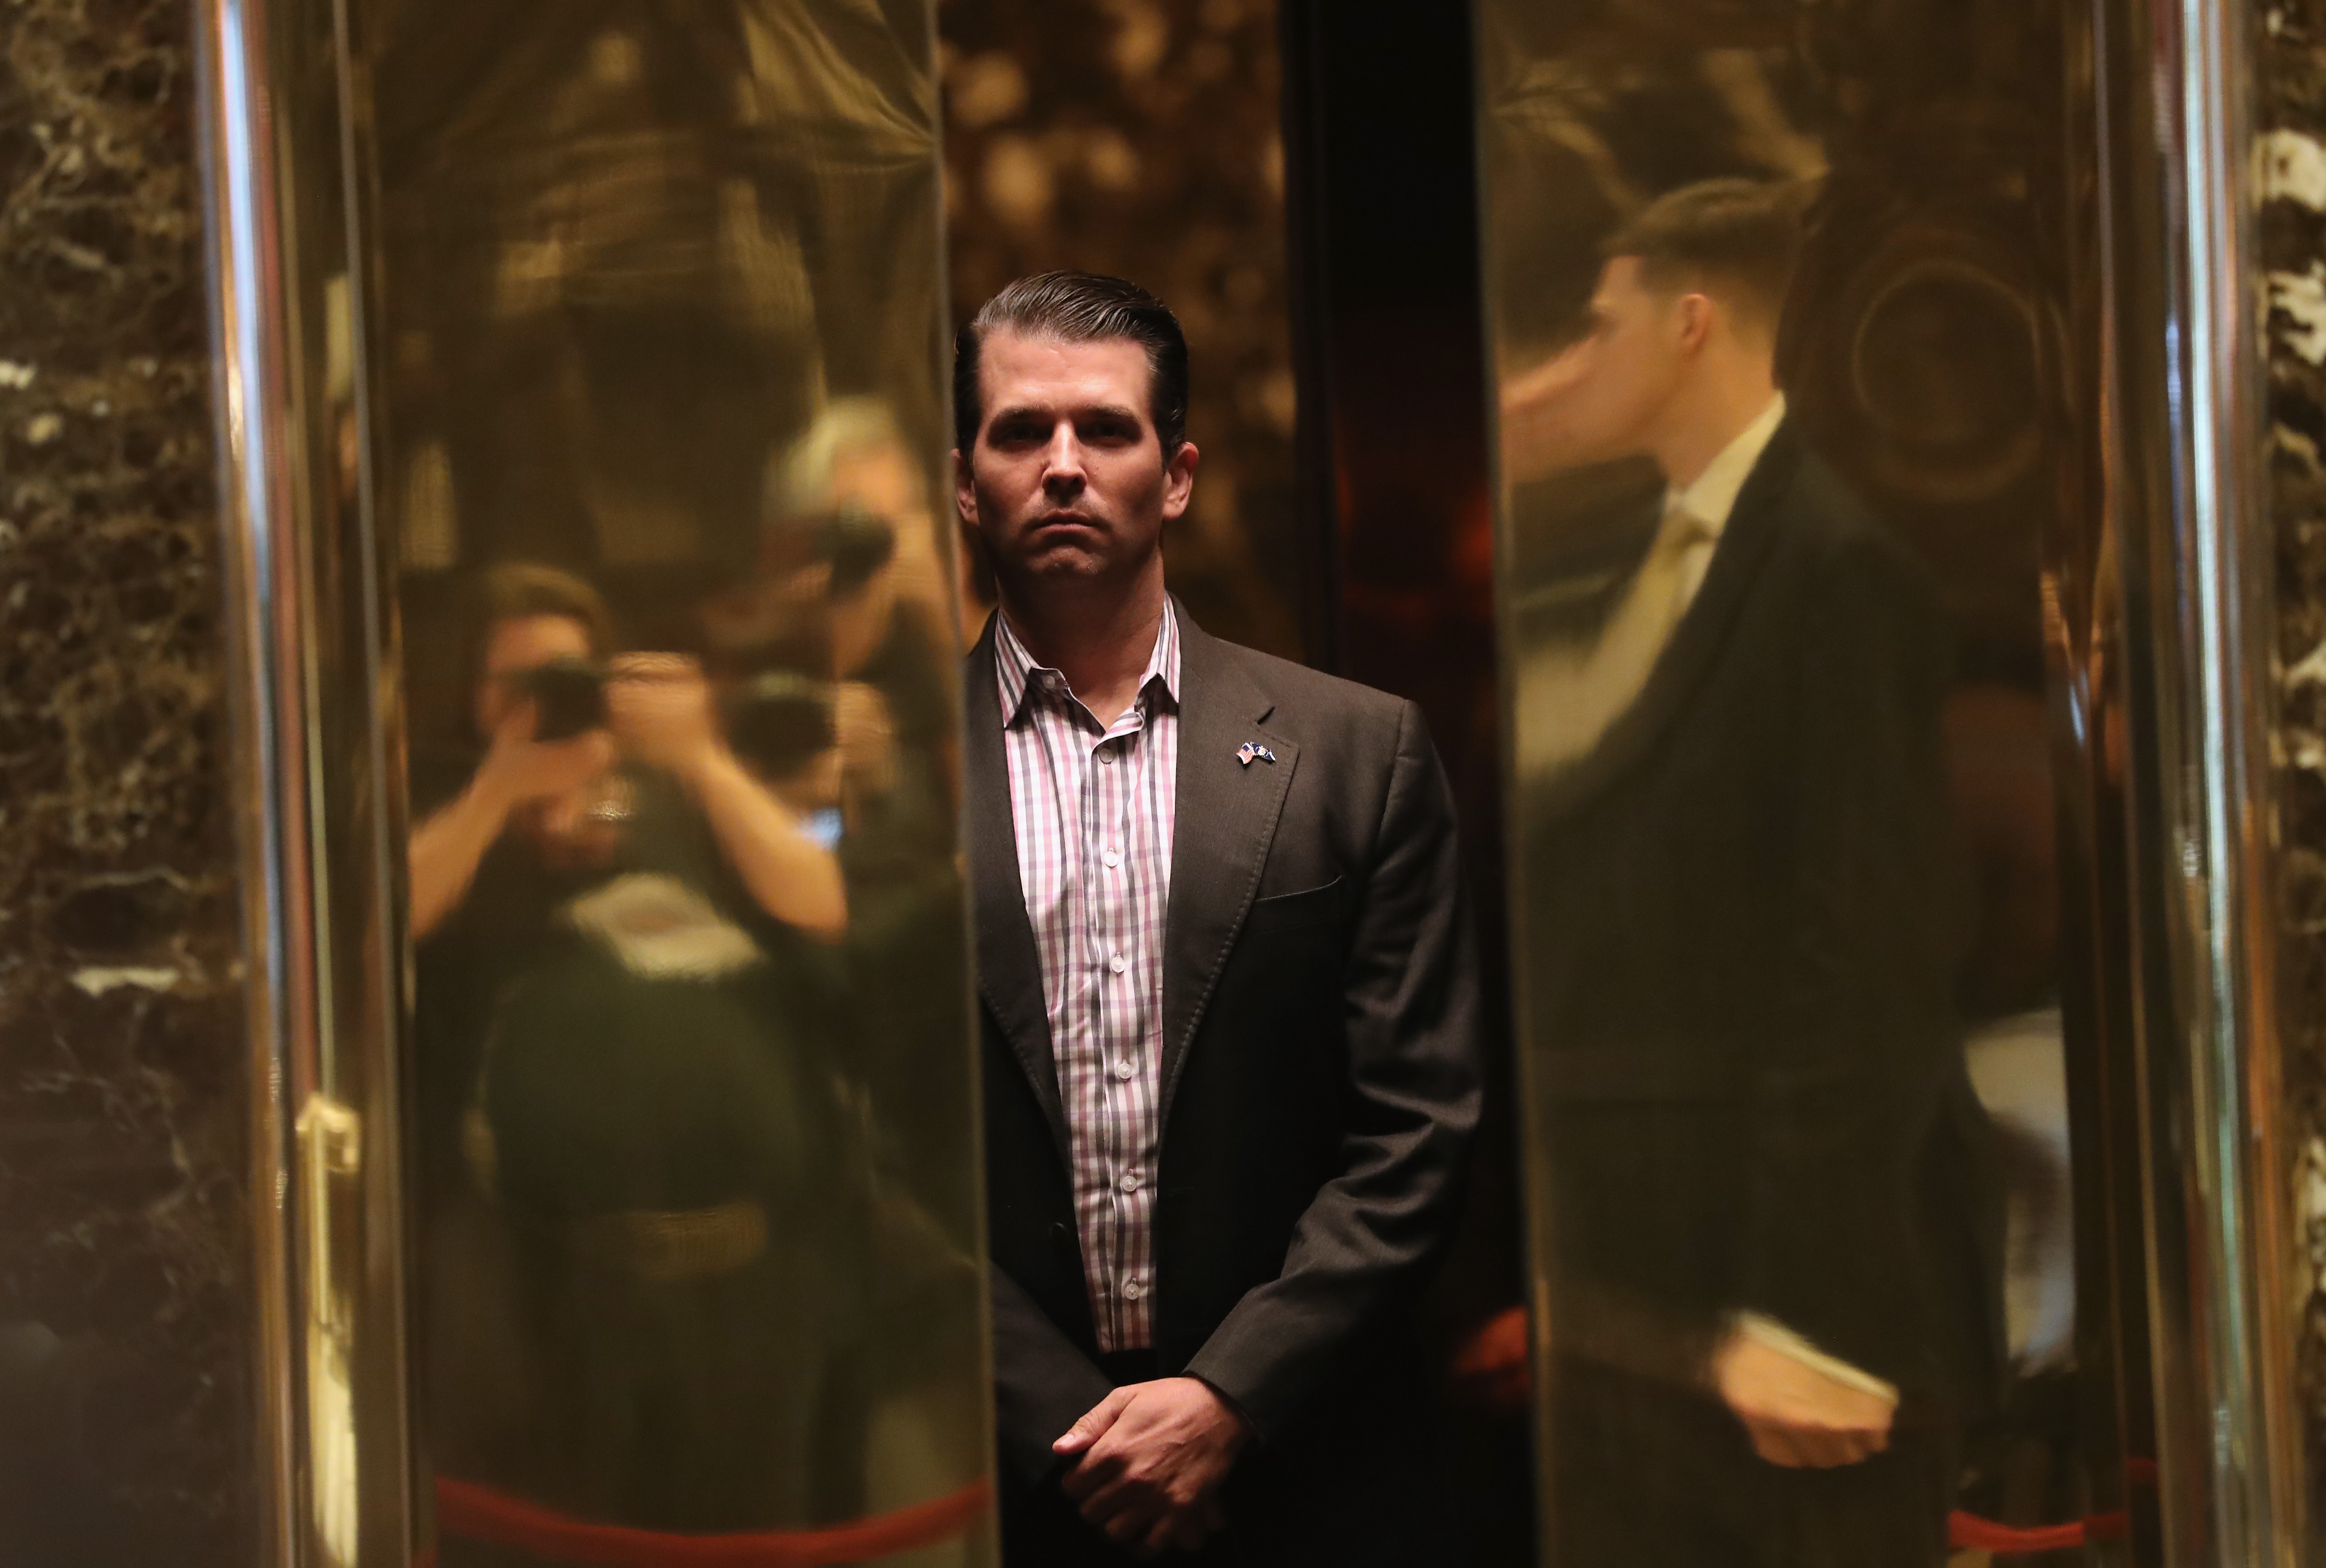 Donald Trump Jr. arrives at Trump Tower on January 18, 2017, in New York City, two days before his father was sworn in as the 45th President of the United States.